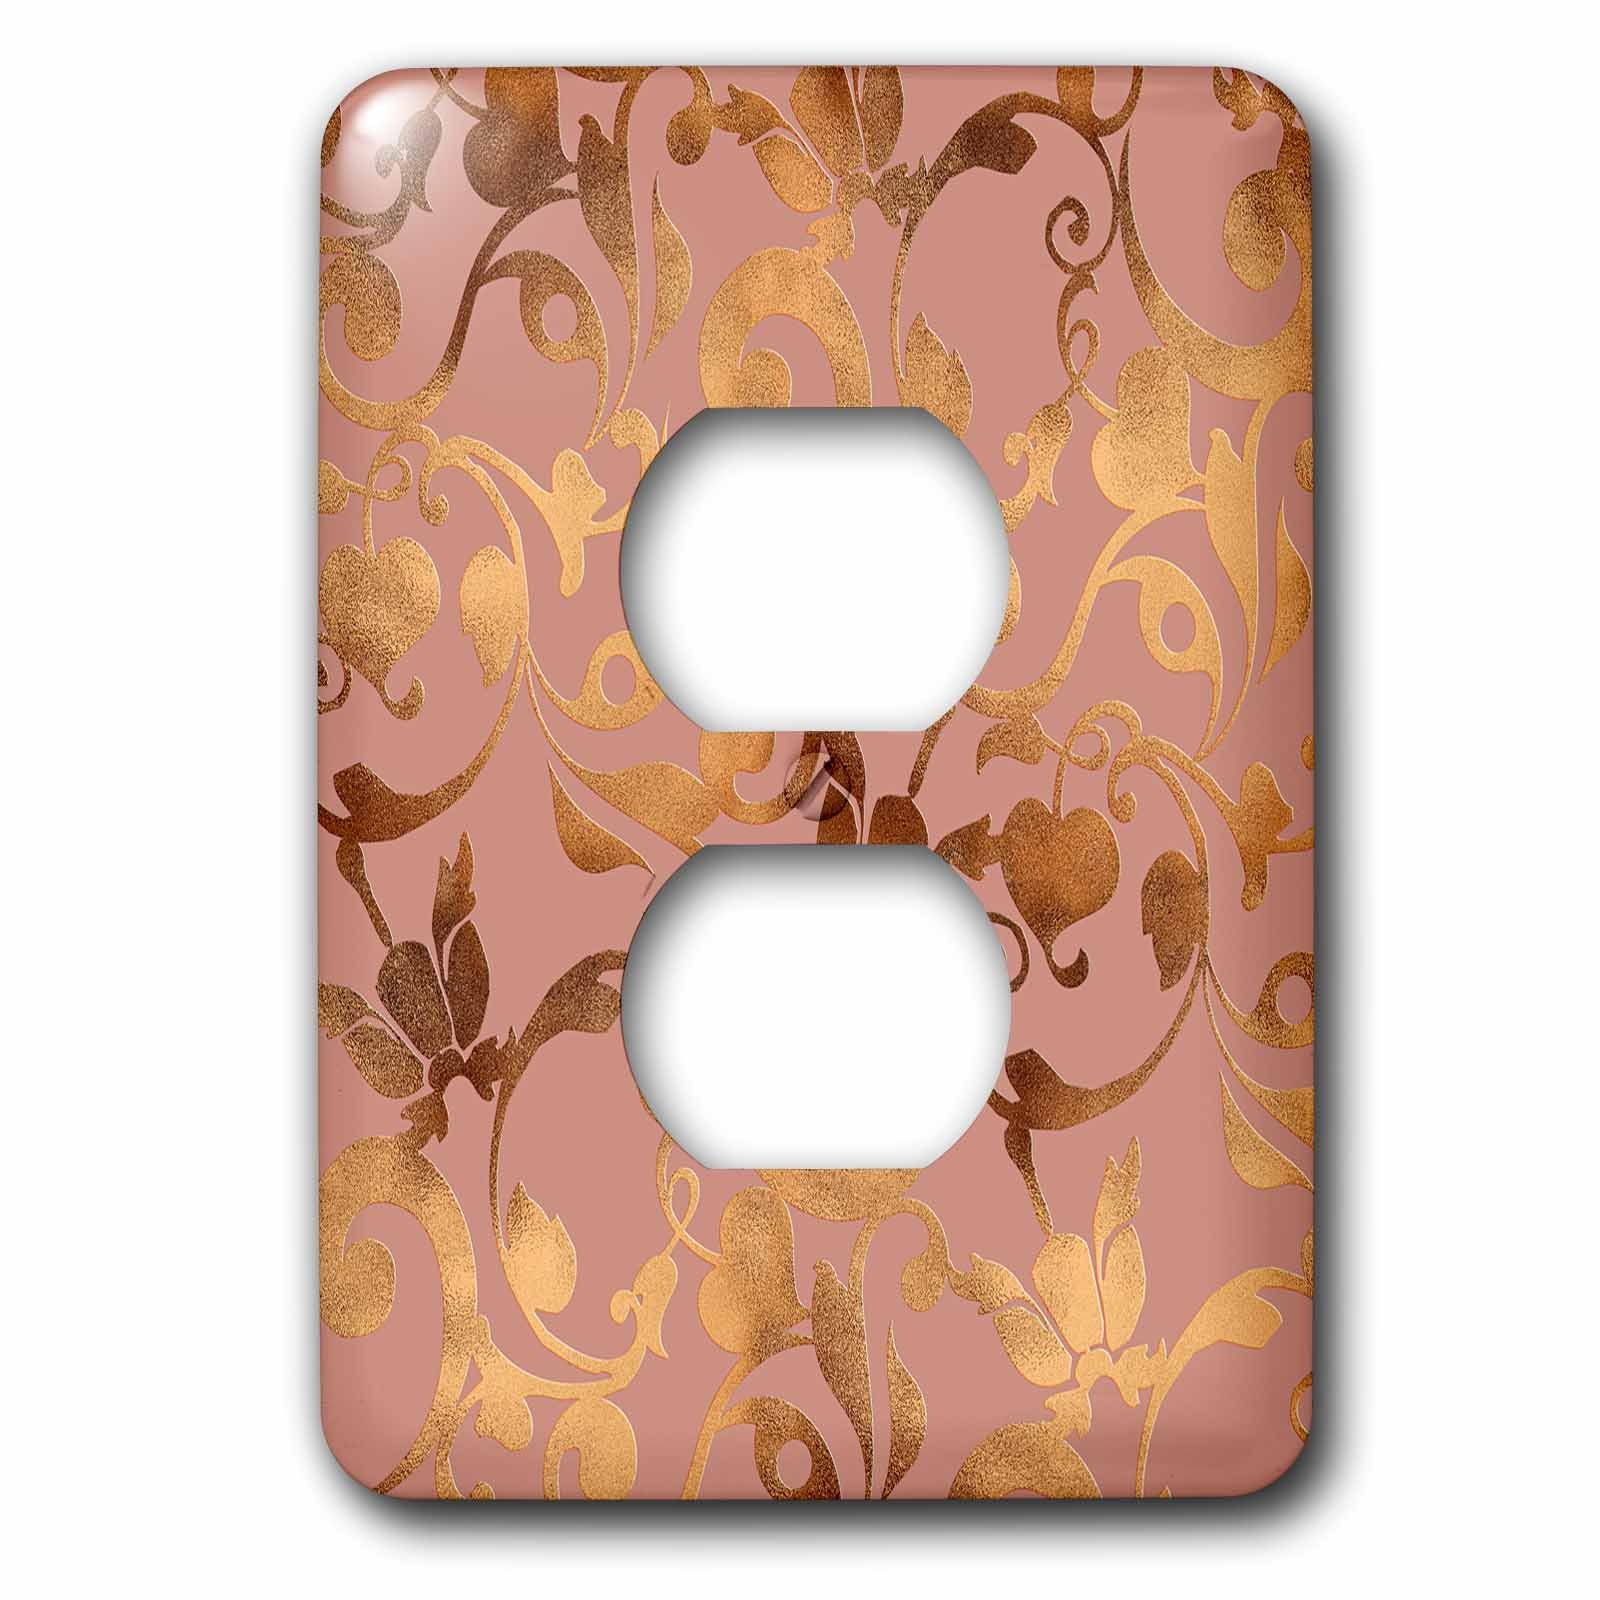 3dRose Uta Naumann Faux Glitter Pattern - Luxury Shiny Elegant Rose Gold Floral Flower Copper Damask Pattern - Light Switch Covers - 2 plug outlet cover (lsp_272877_6) by 3dRose (Image #1)